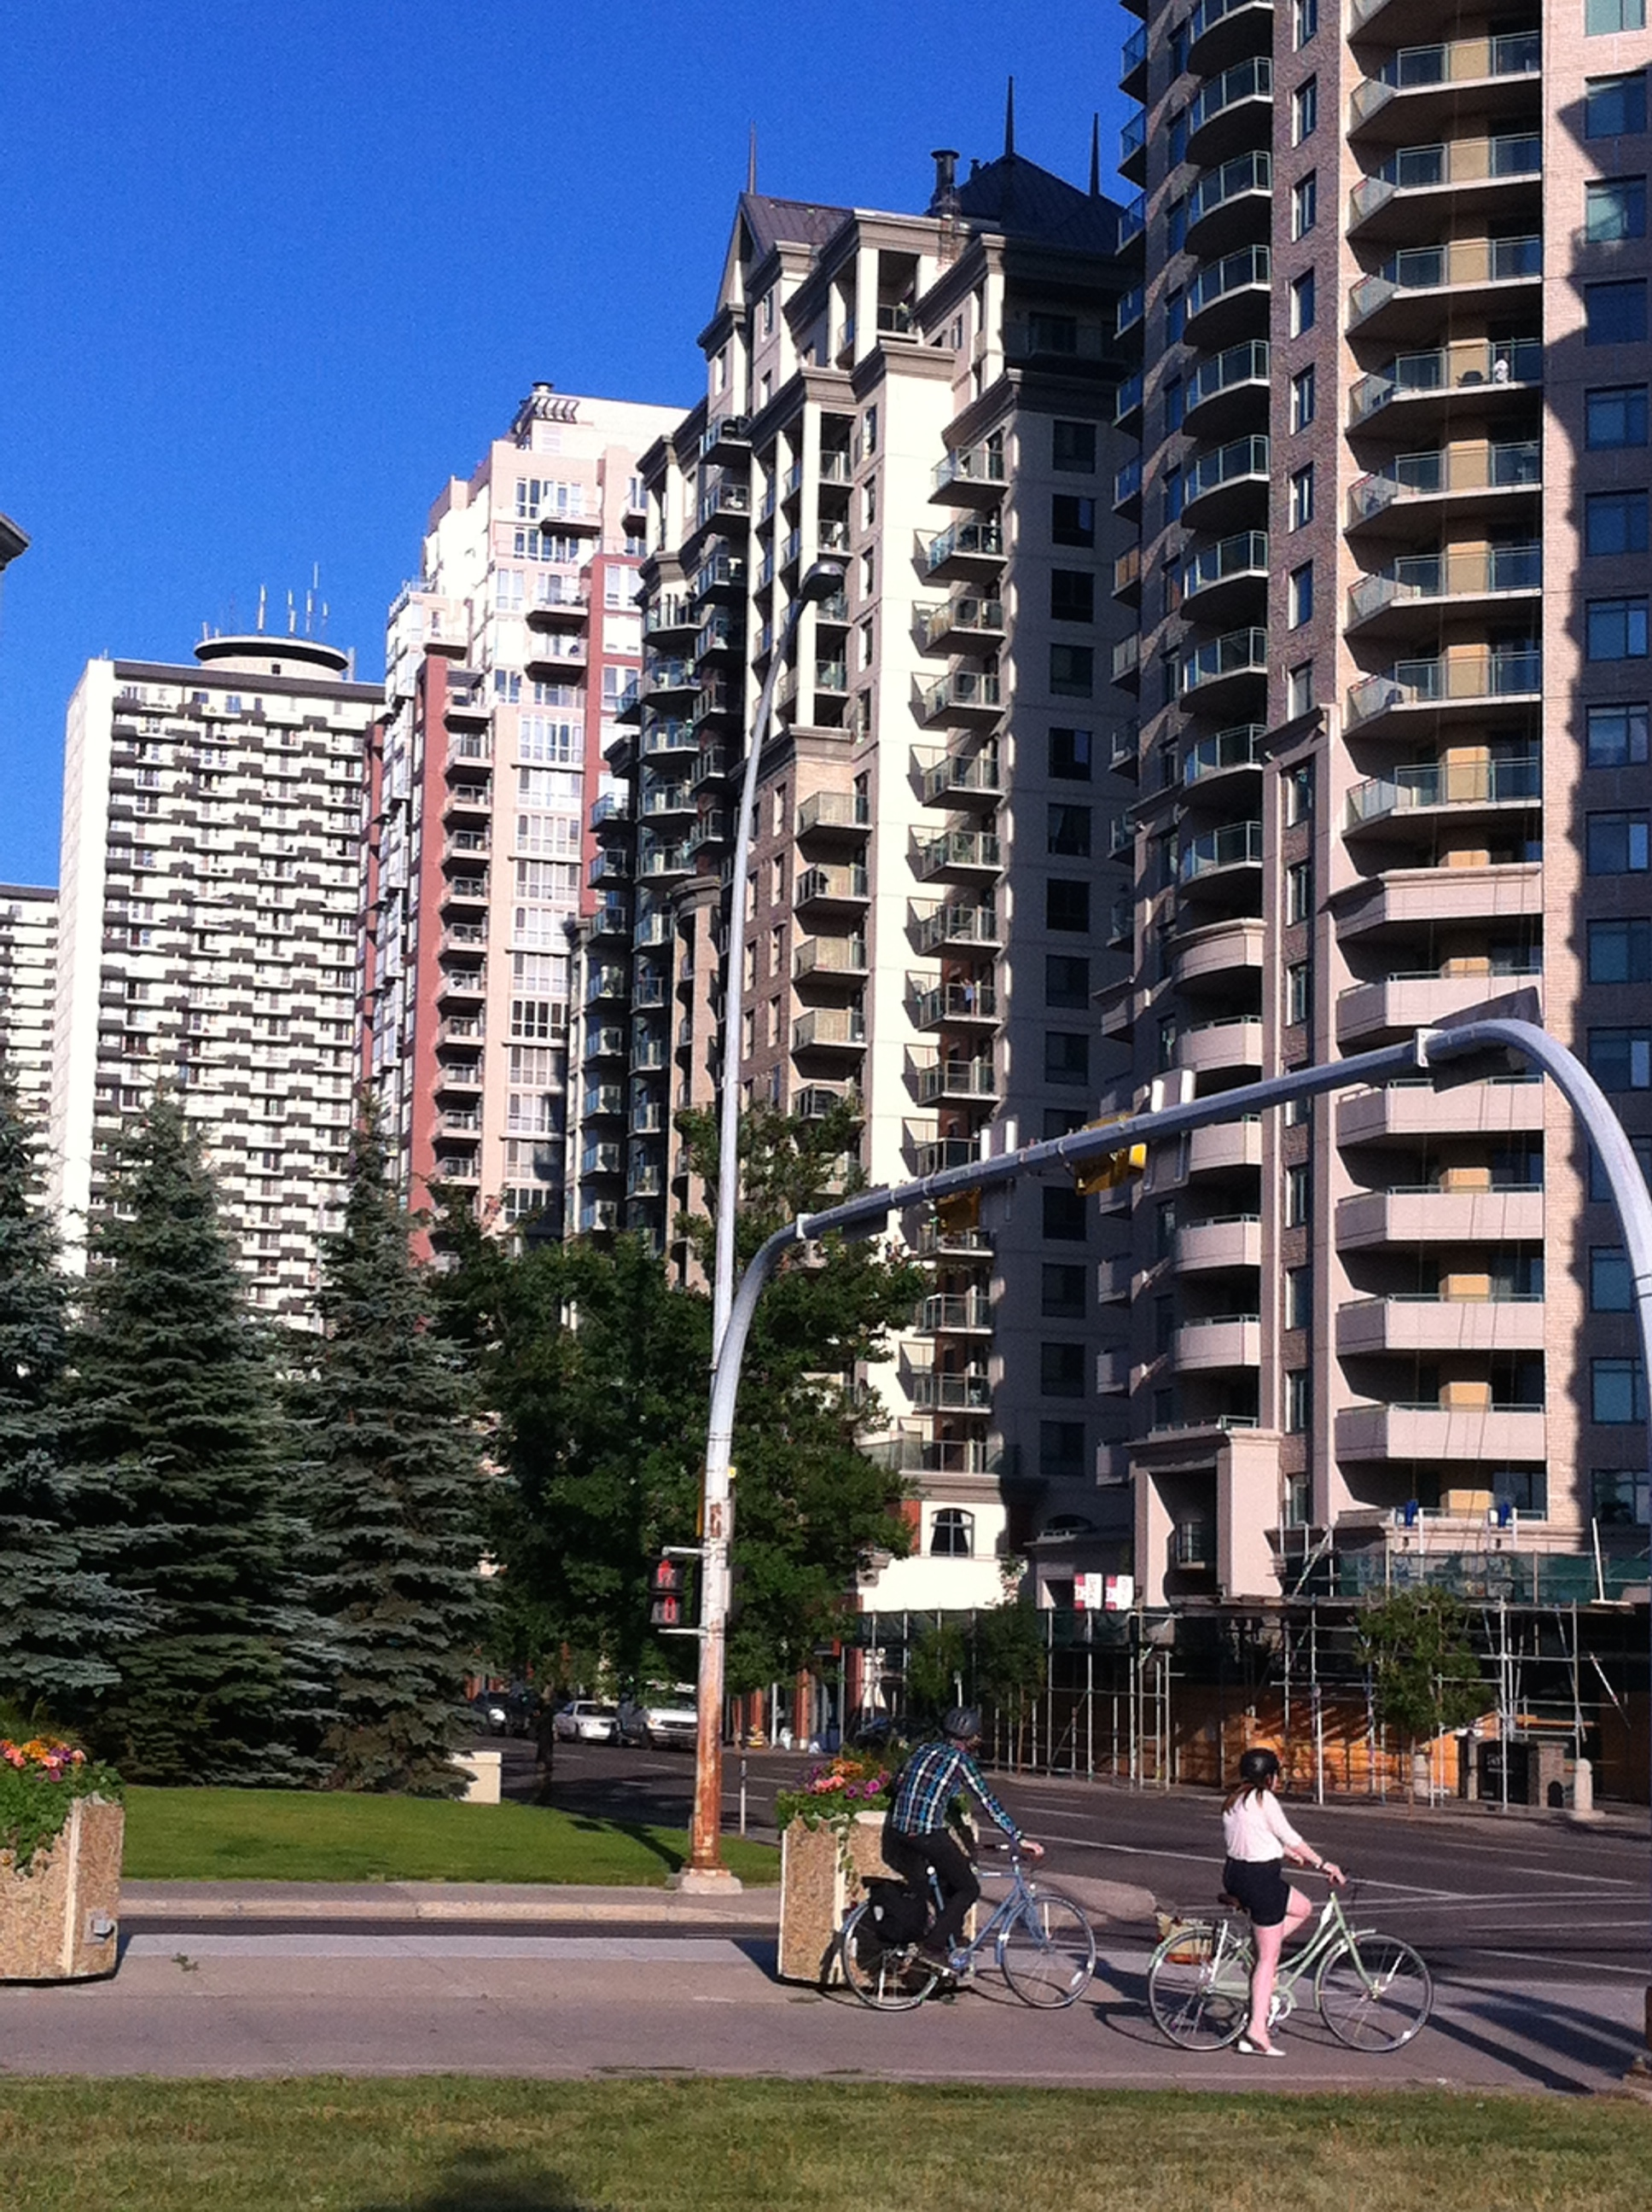 Yuppies and Ruppies are attracted to the maintenance free condo lifestyle in Calgary's West End neighbourhood.